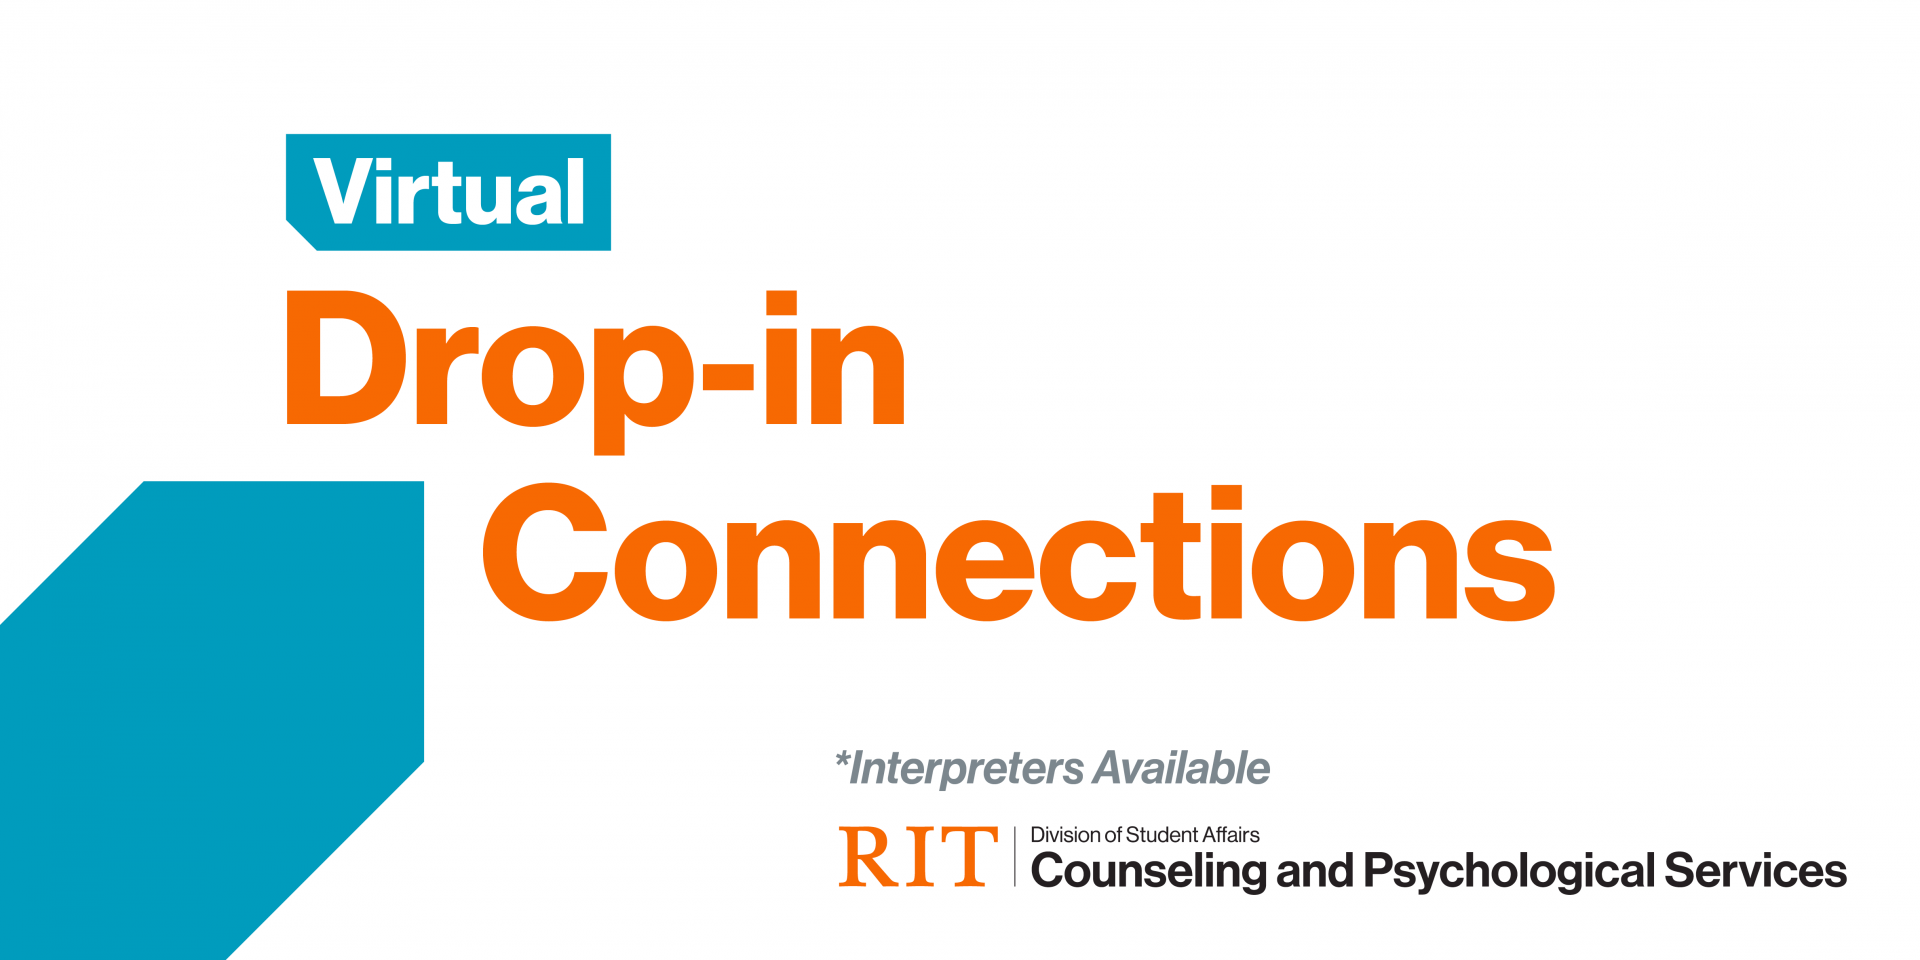 Virtual Drop-in Connections with Counseling and Psychological Services Interpreters Available